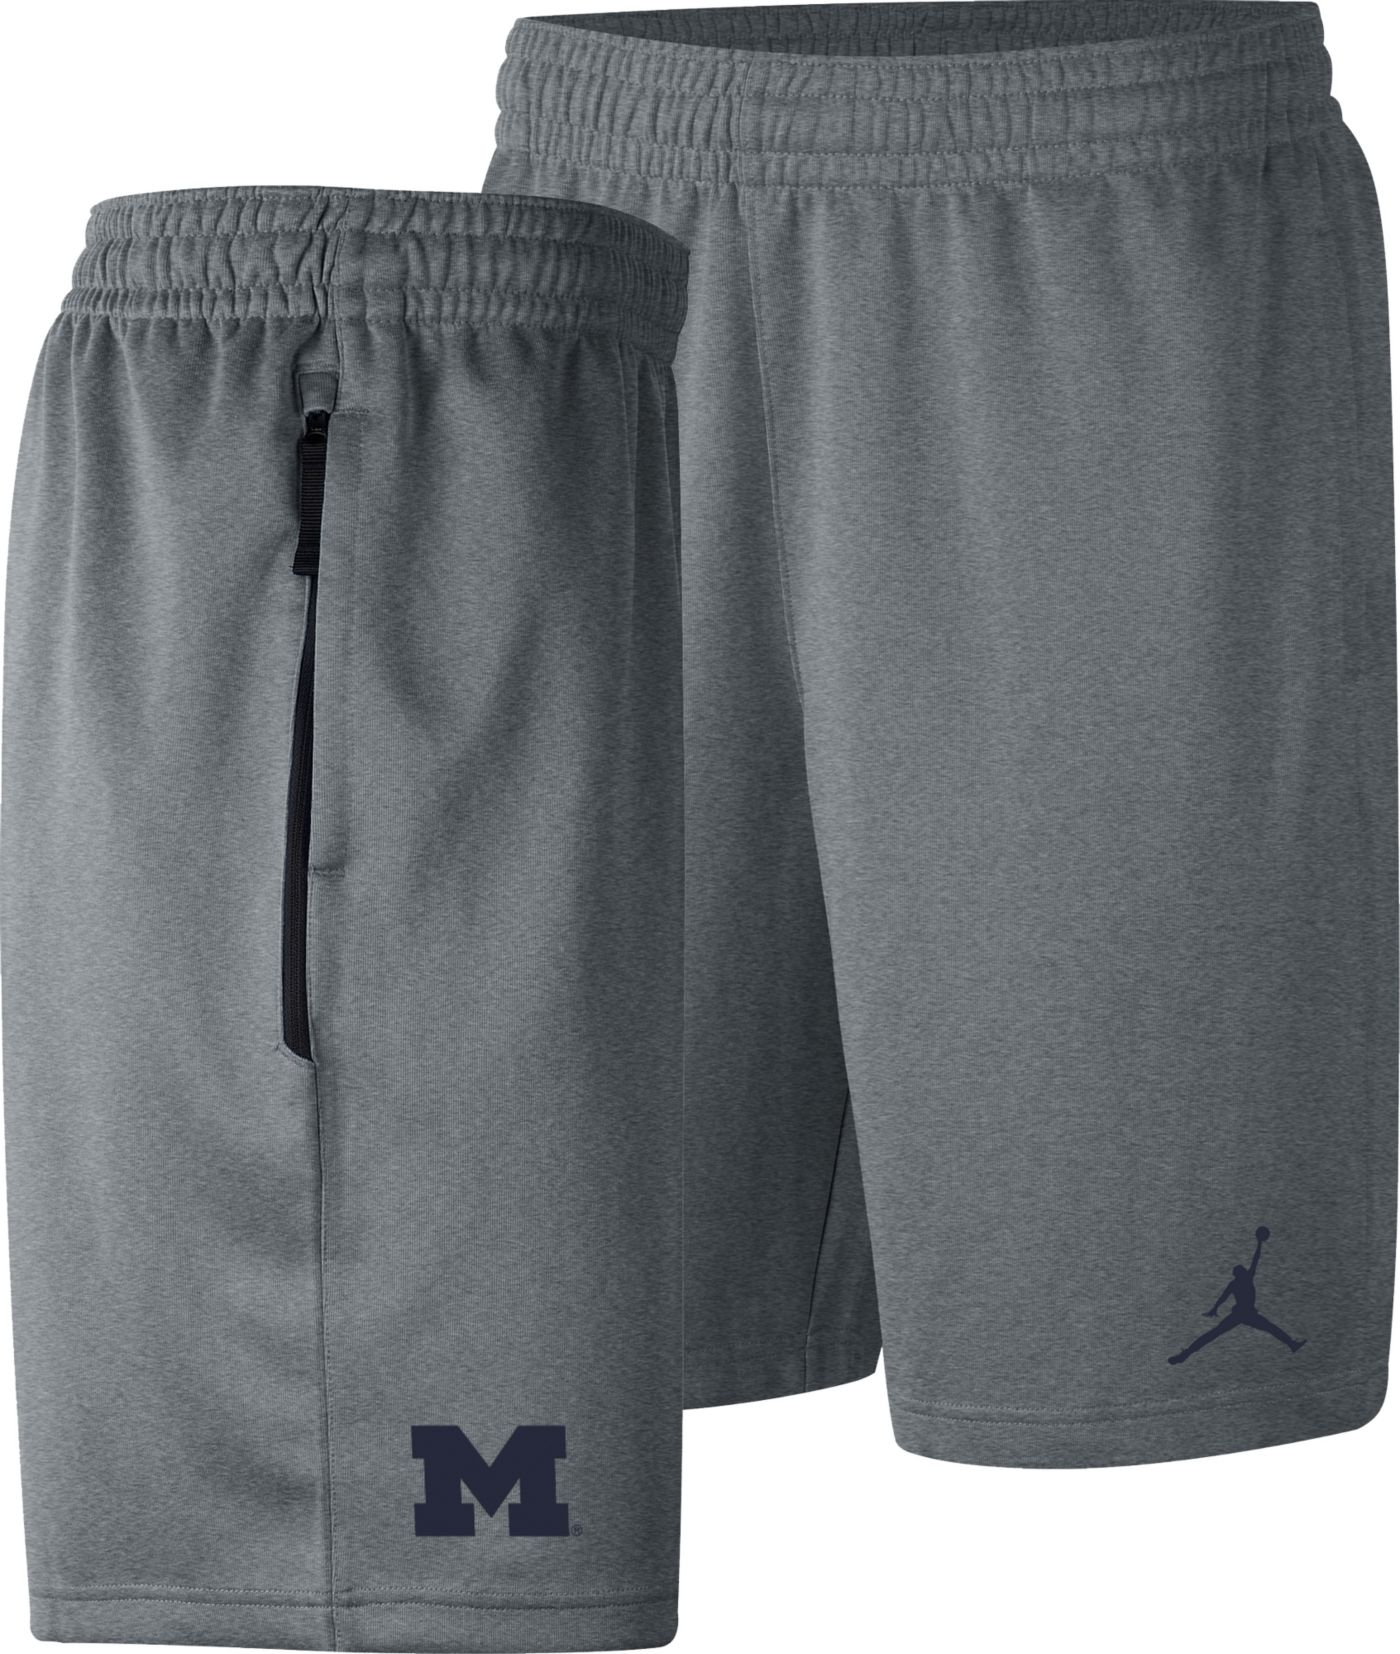 Nike Men's Michigan Wolverines Grey Dri-FIT Spotlight Basketball Shorts